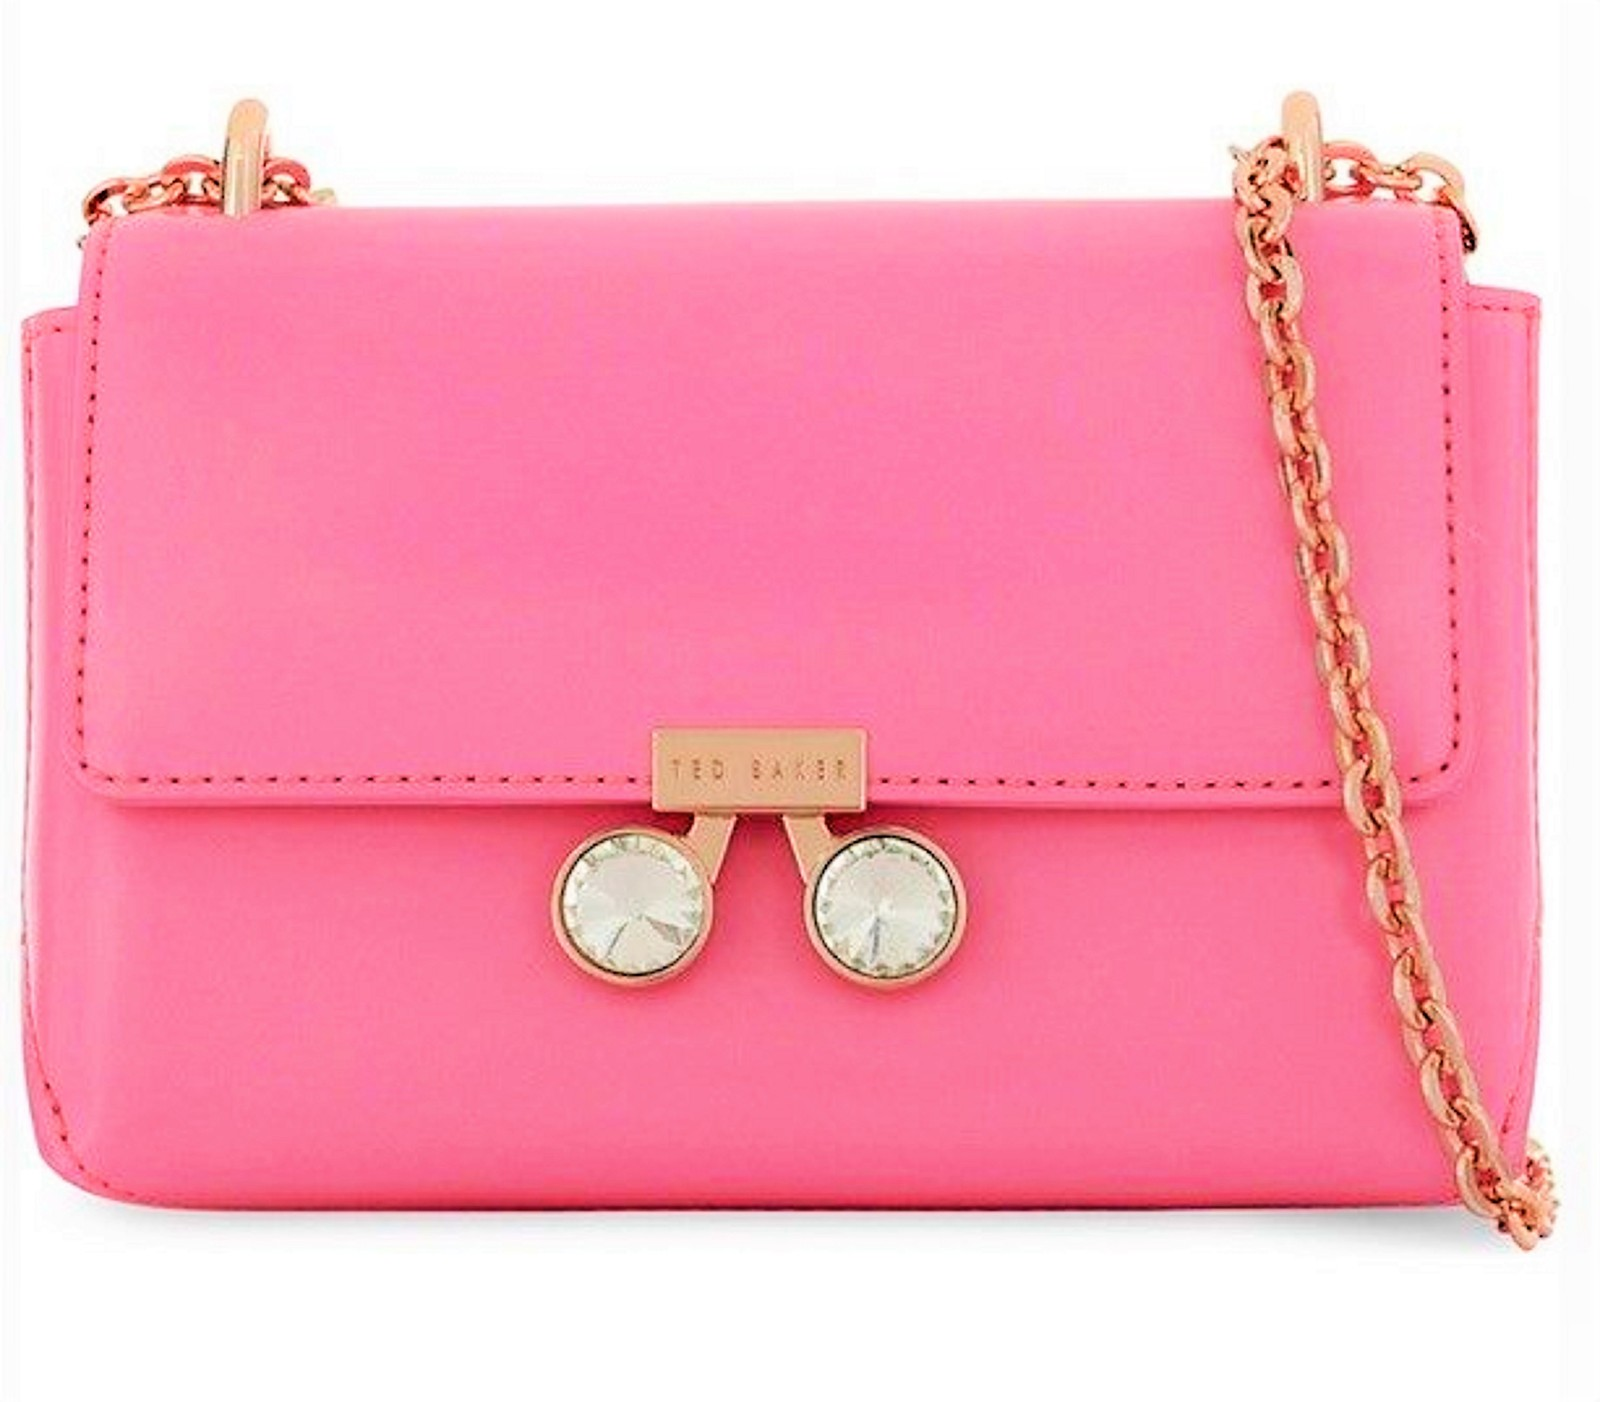 Primary image for Ted Baker London Adoni Pink Patent Leather Crystal Bobble Crossbody